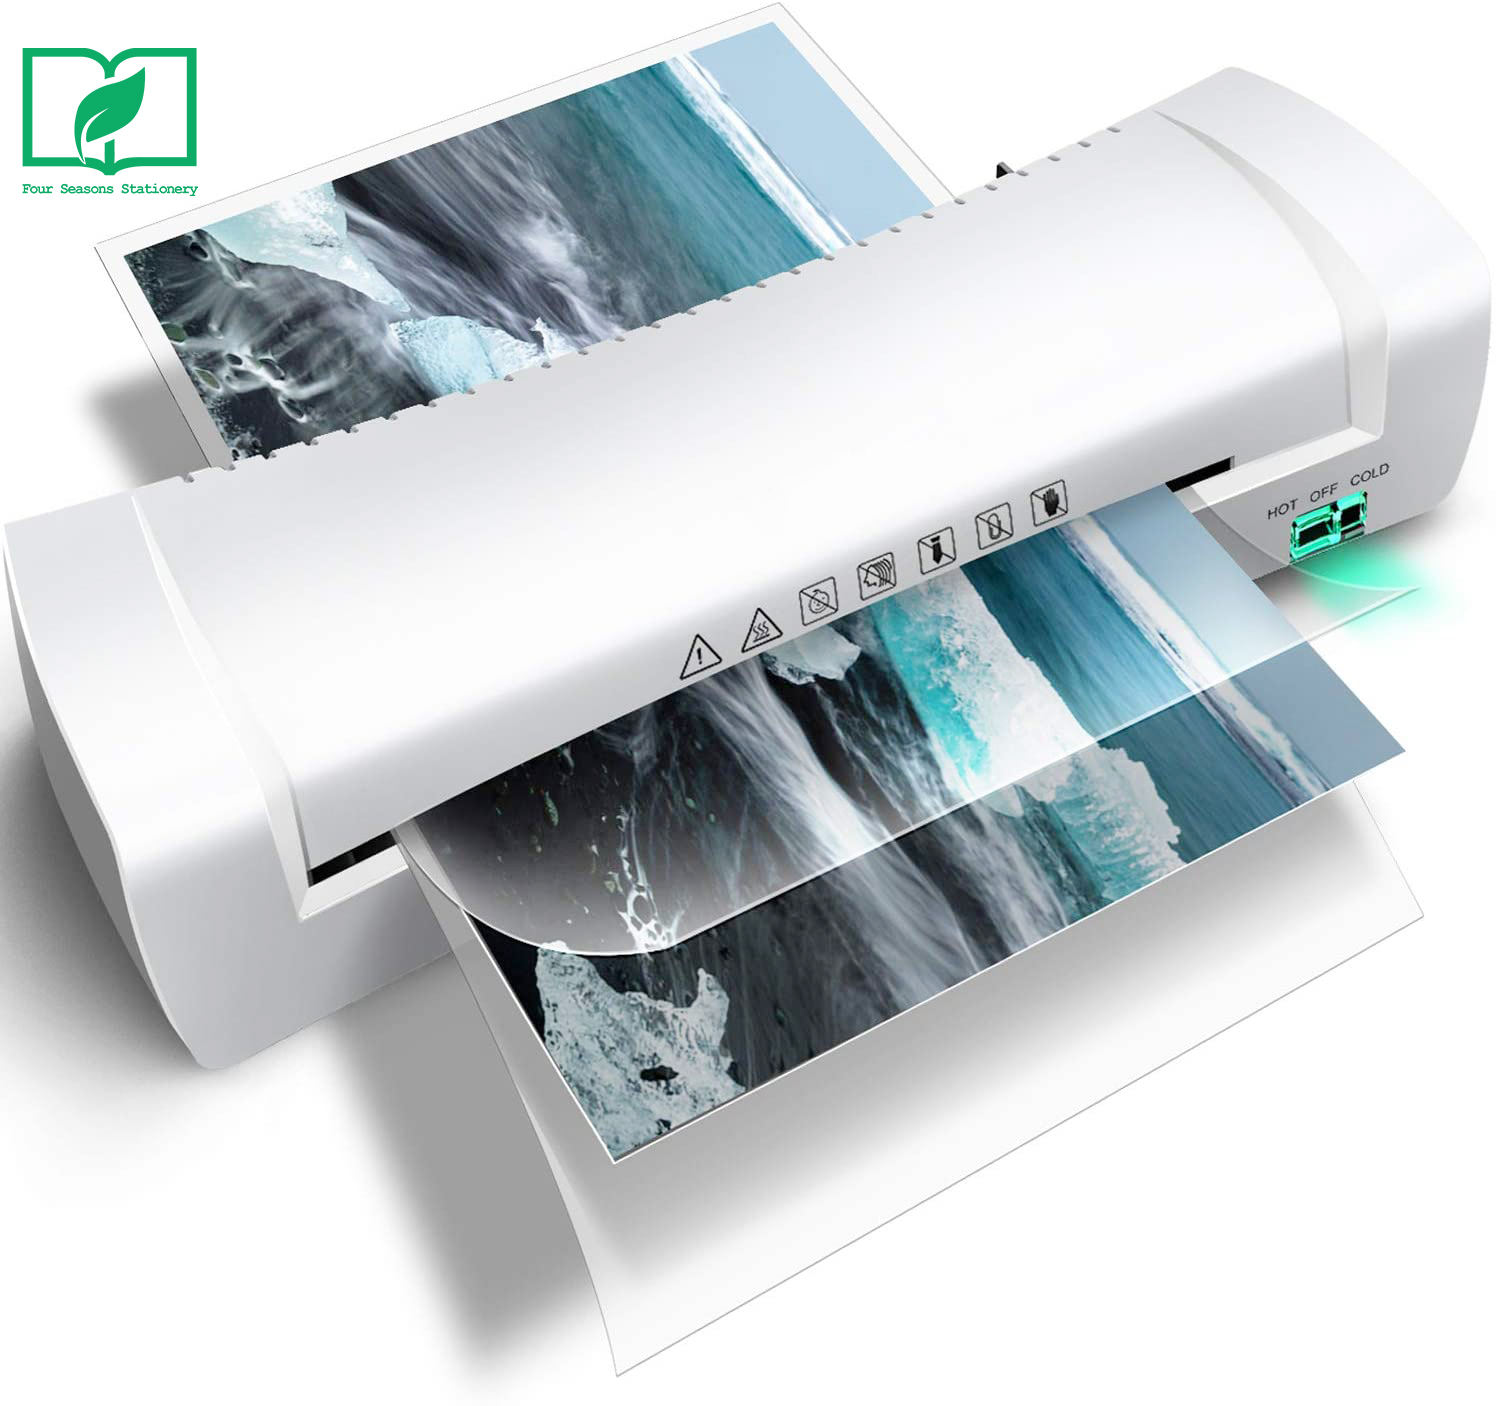 Automatic hot and cold A4 flatbed laminator or laminating machine